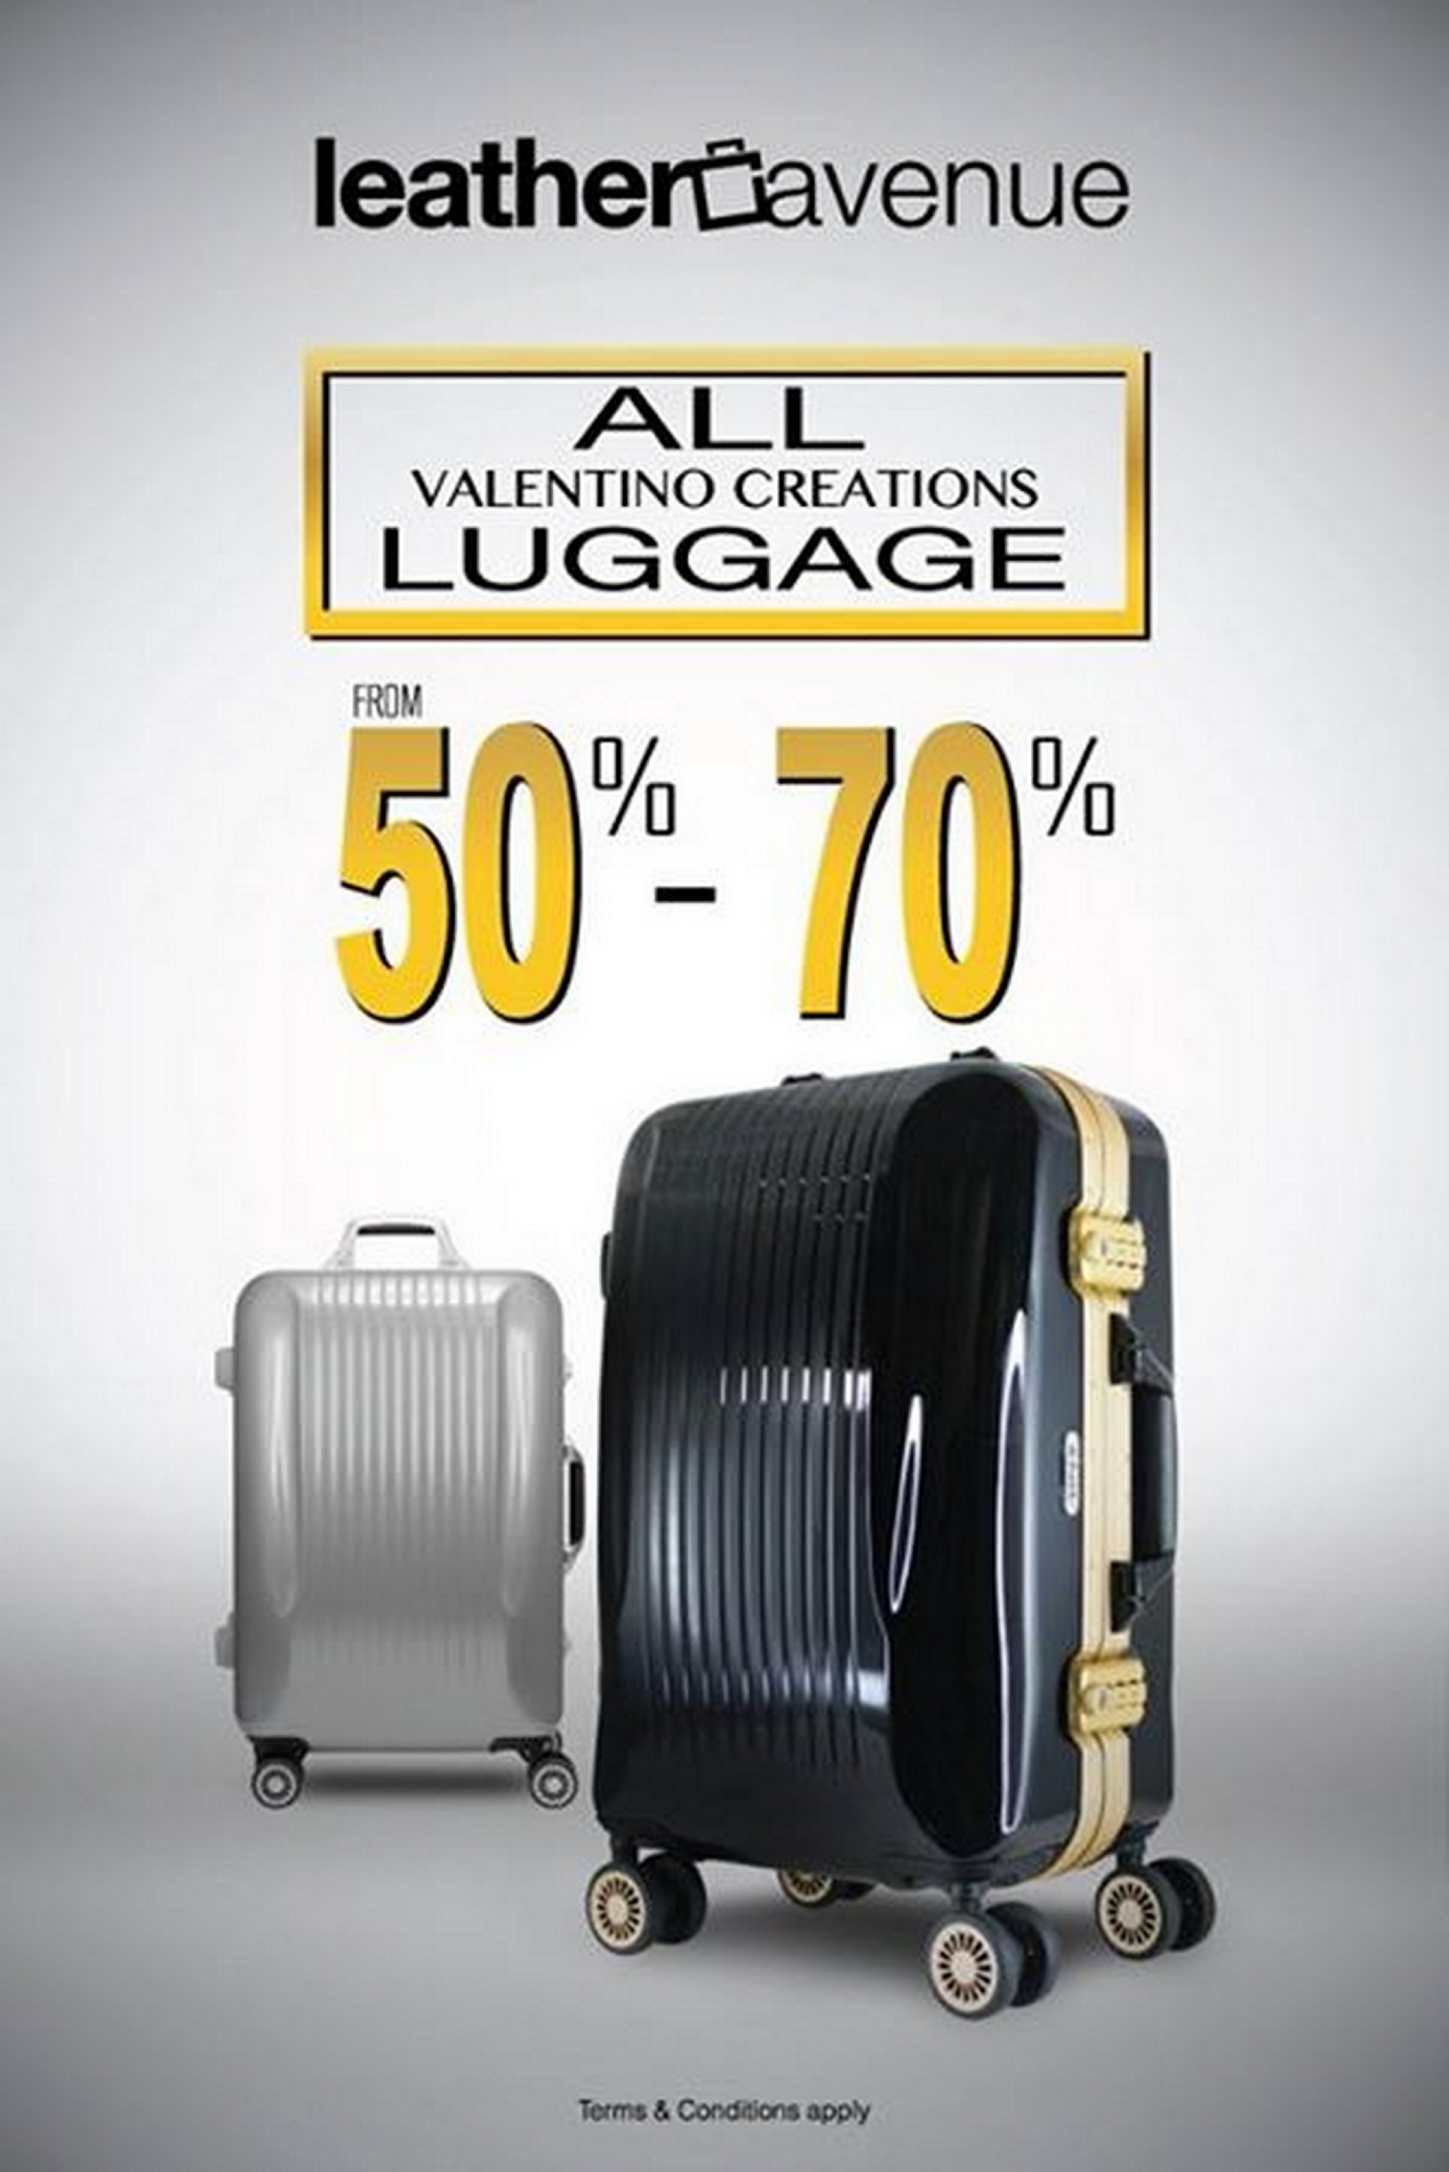 Calaméo - enjoy-up-to-70-off-on-all-valentino-creations-luggage-at ...